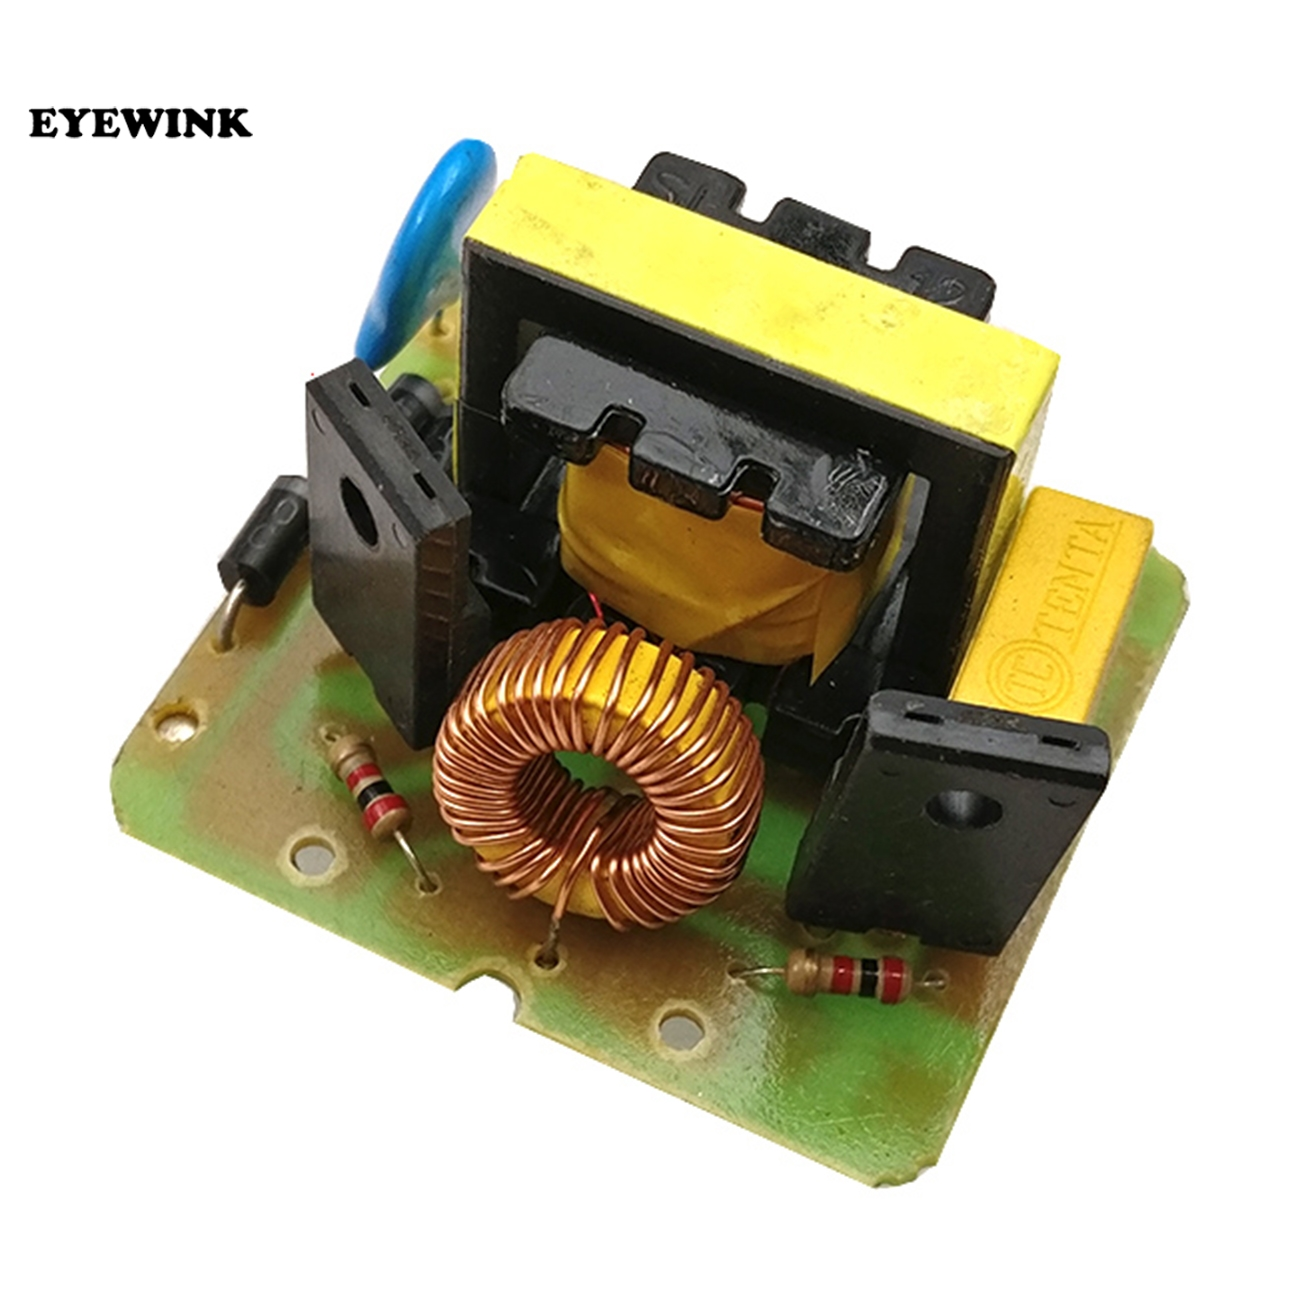 Free Ship1pcs 500w Power Supply Boost Inverter Dc 12v 16v To Ac 18v Circuit Using Transistor 2n3055 Electronic 220v Step Up Module 35w Dual Channel